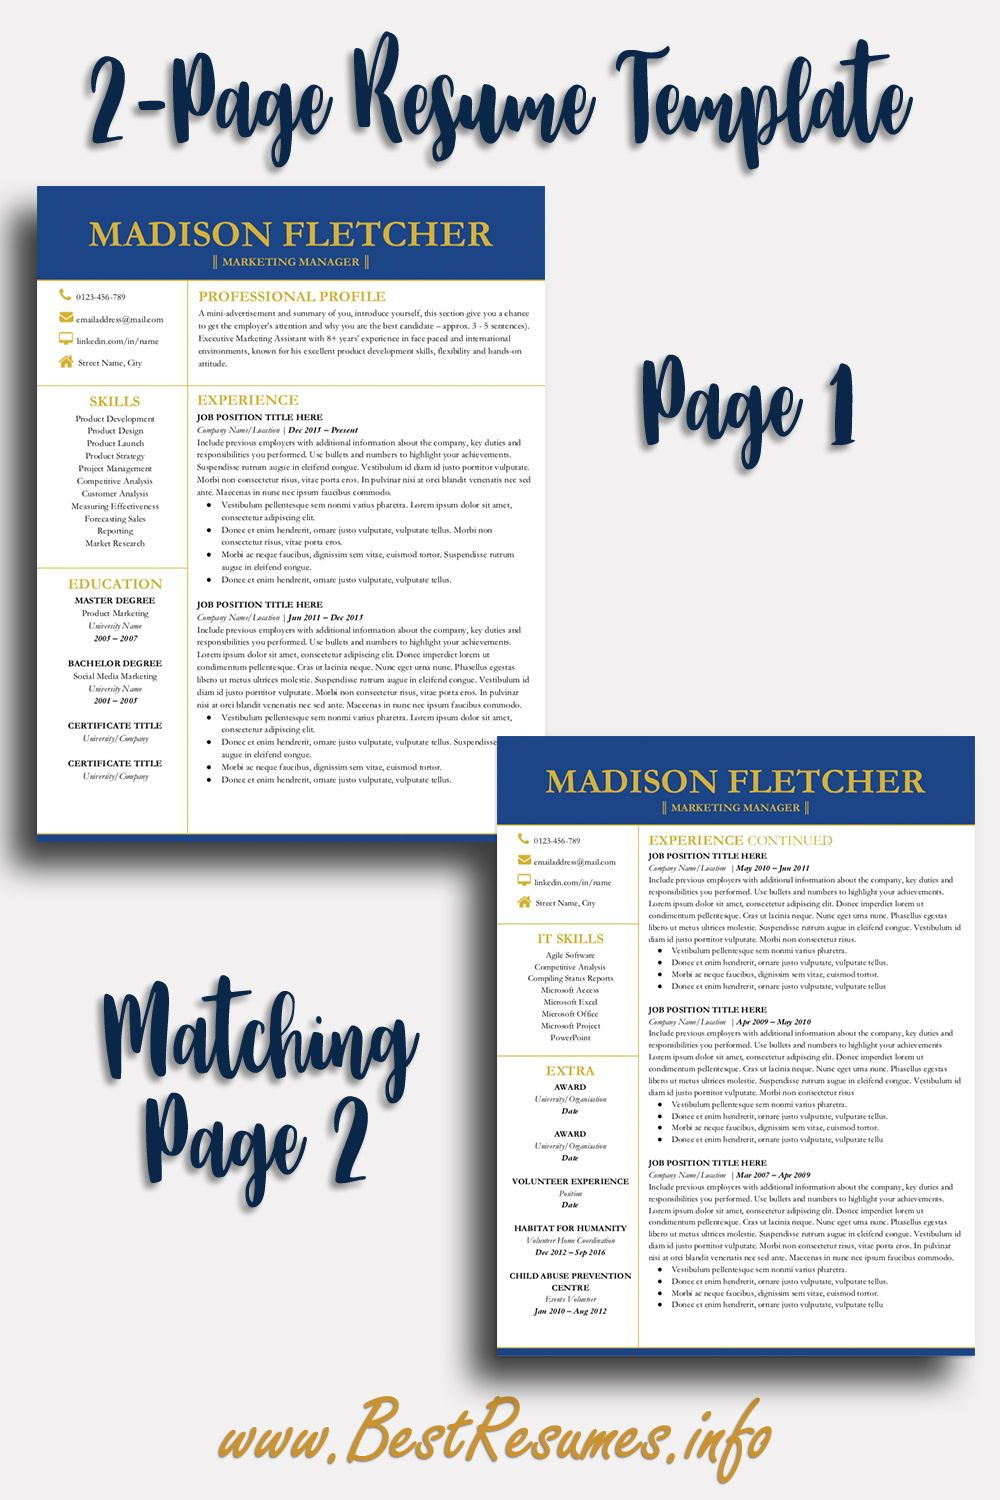 Elegant Resume Template Madison Fletcher - Teacher resume template, Business resume template, Job resume template, Best resume template, Resume layout, Resume template - Elegant Resume Template Madison Fletcher  Get this resume killer modern resume template for Google Docs and land the job! Check more here